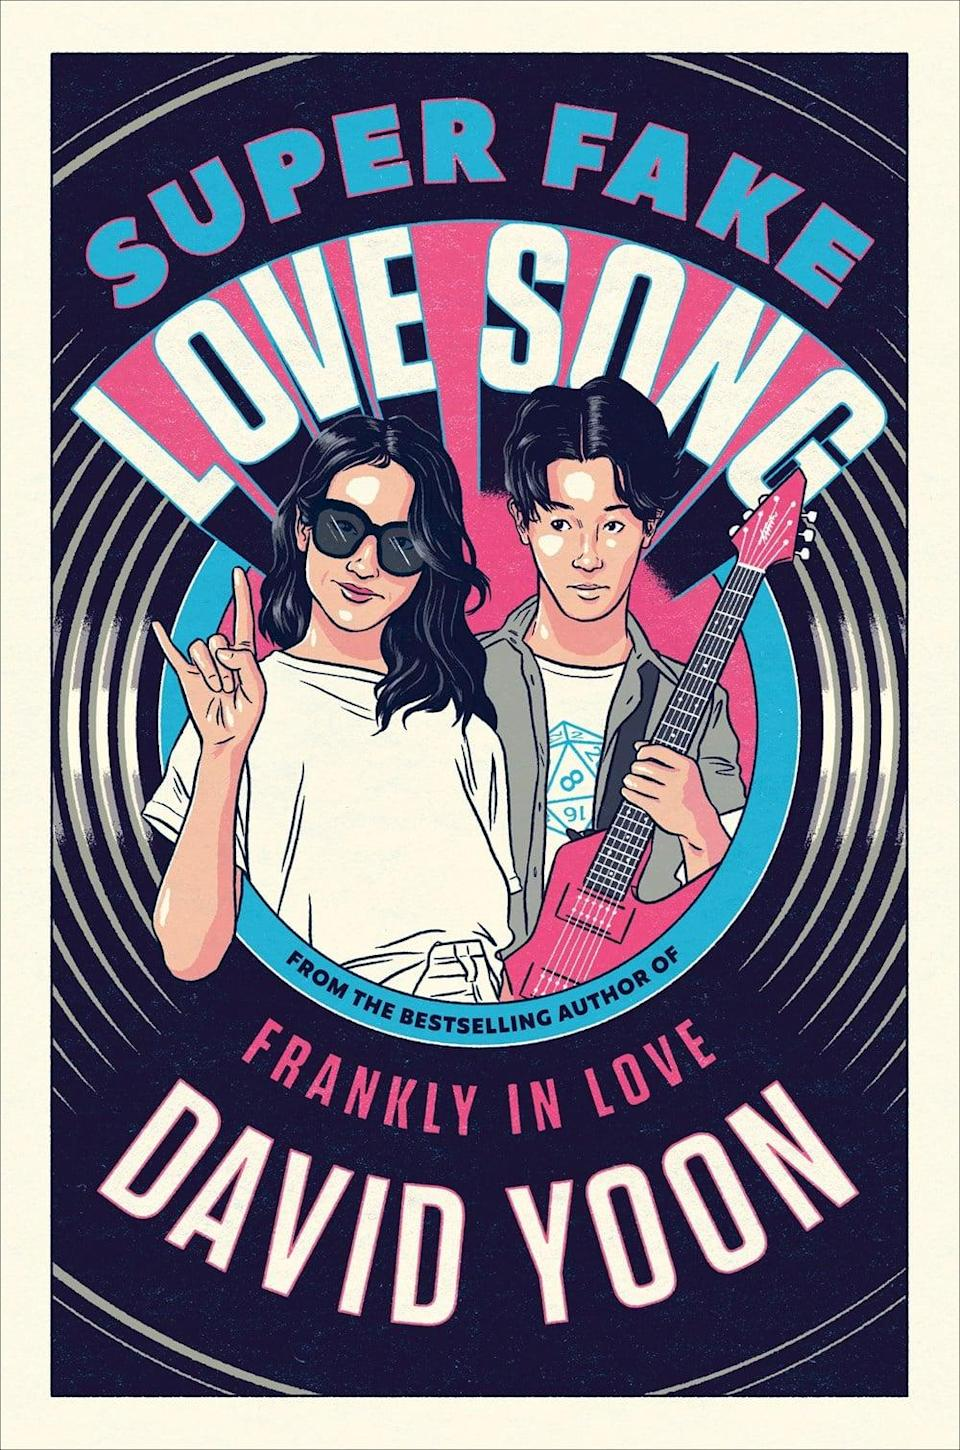 <p>Sweet and funny, <span><b>Super Fake Love Song</b></span> by David Yoon is a rom-com about a case of mistaken identity. When the nerdy Sunny Dae meets cool girl Cirrus Soh, she mistakes his rock and roll loving brother's room for his, and he's too embarrassed to correct her. Soon, Sunny loops his friends into forming a fake band with him so he can impress Sunny, only to find his new persona feels more and more real with every lie he tells. </p> <p><em>Out Nov. 17</em></p>